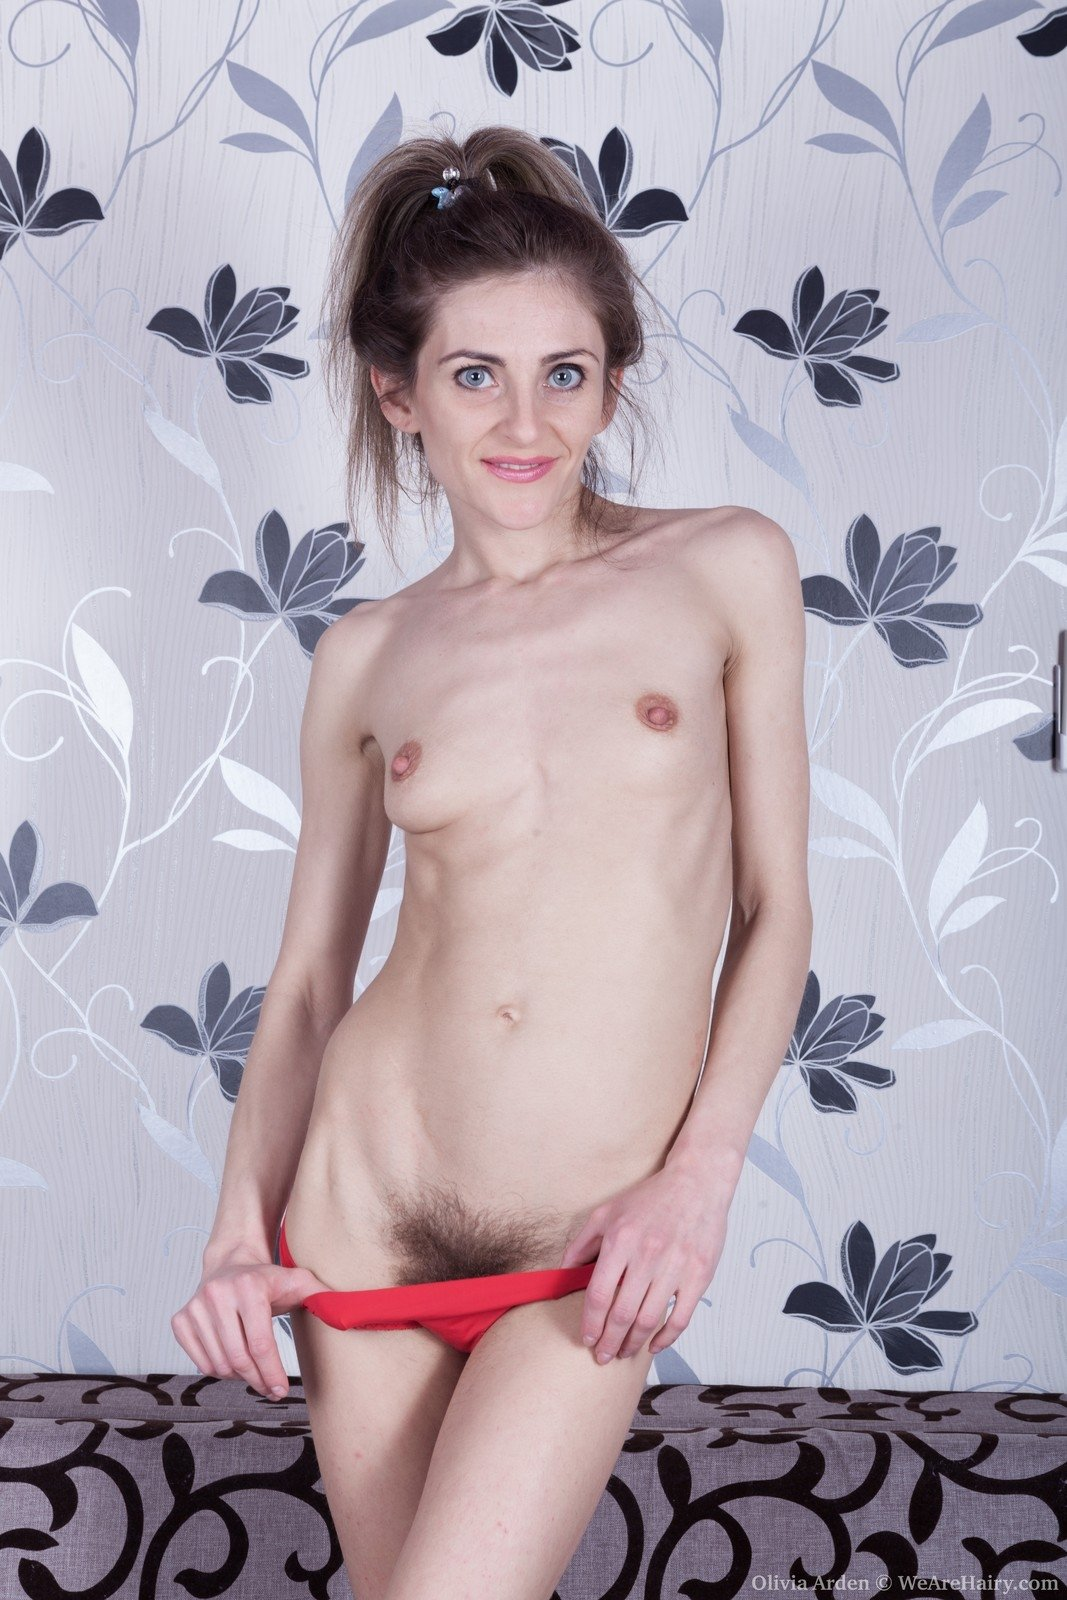 Rated r adult chat sites